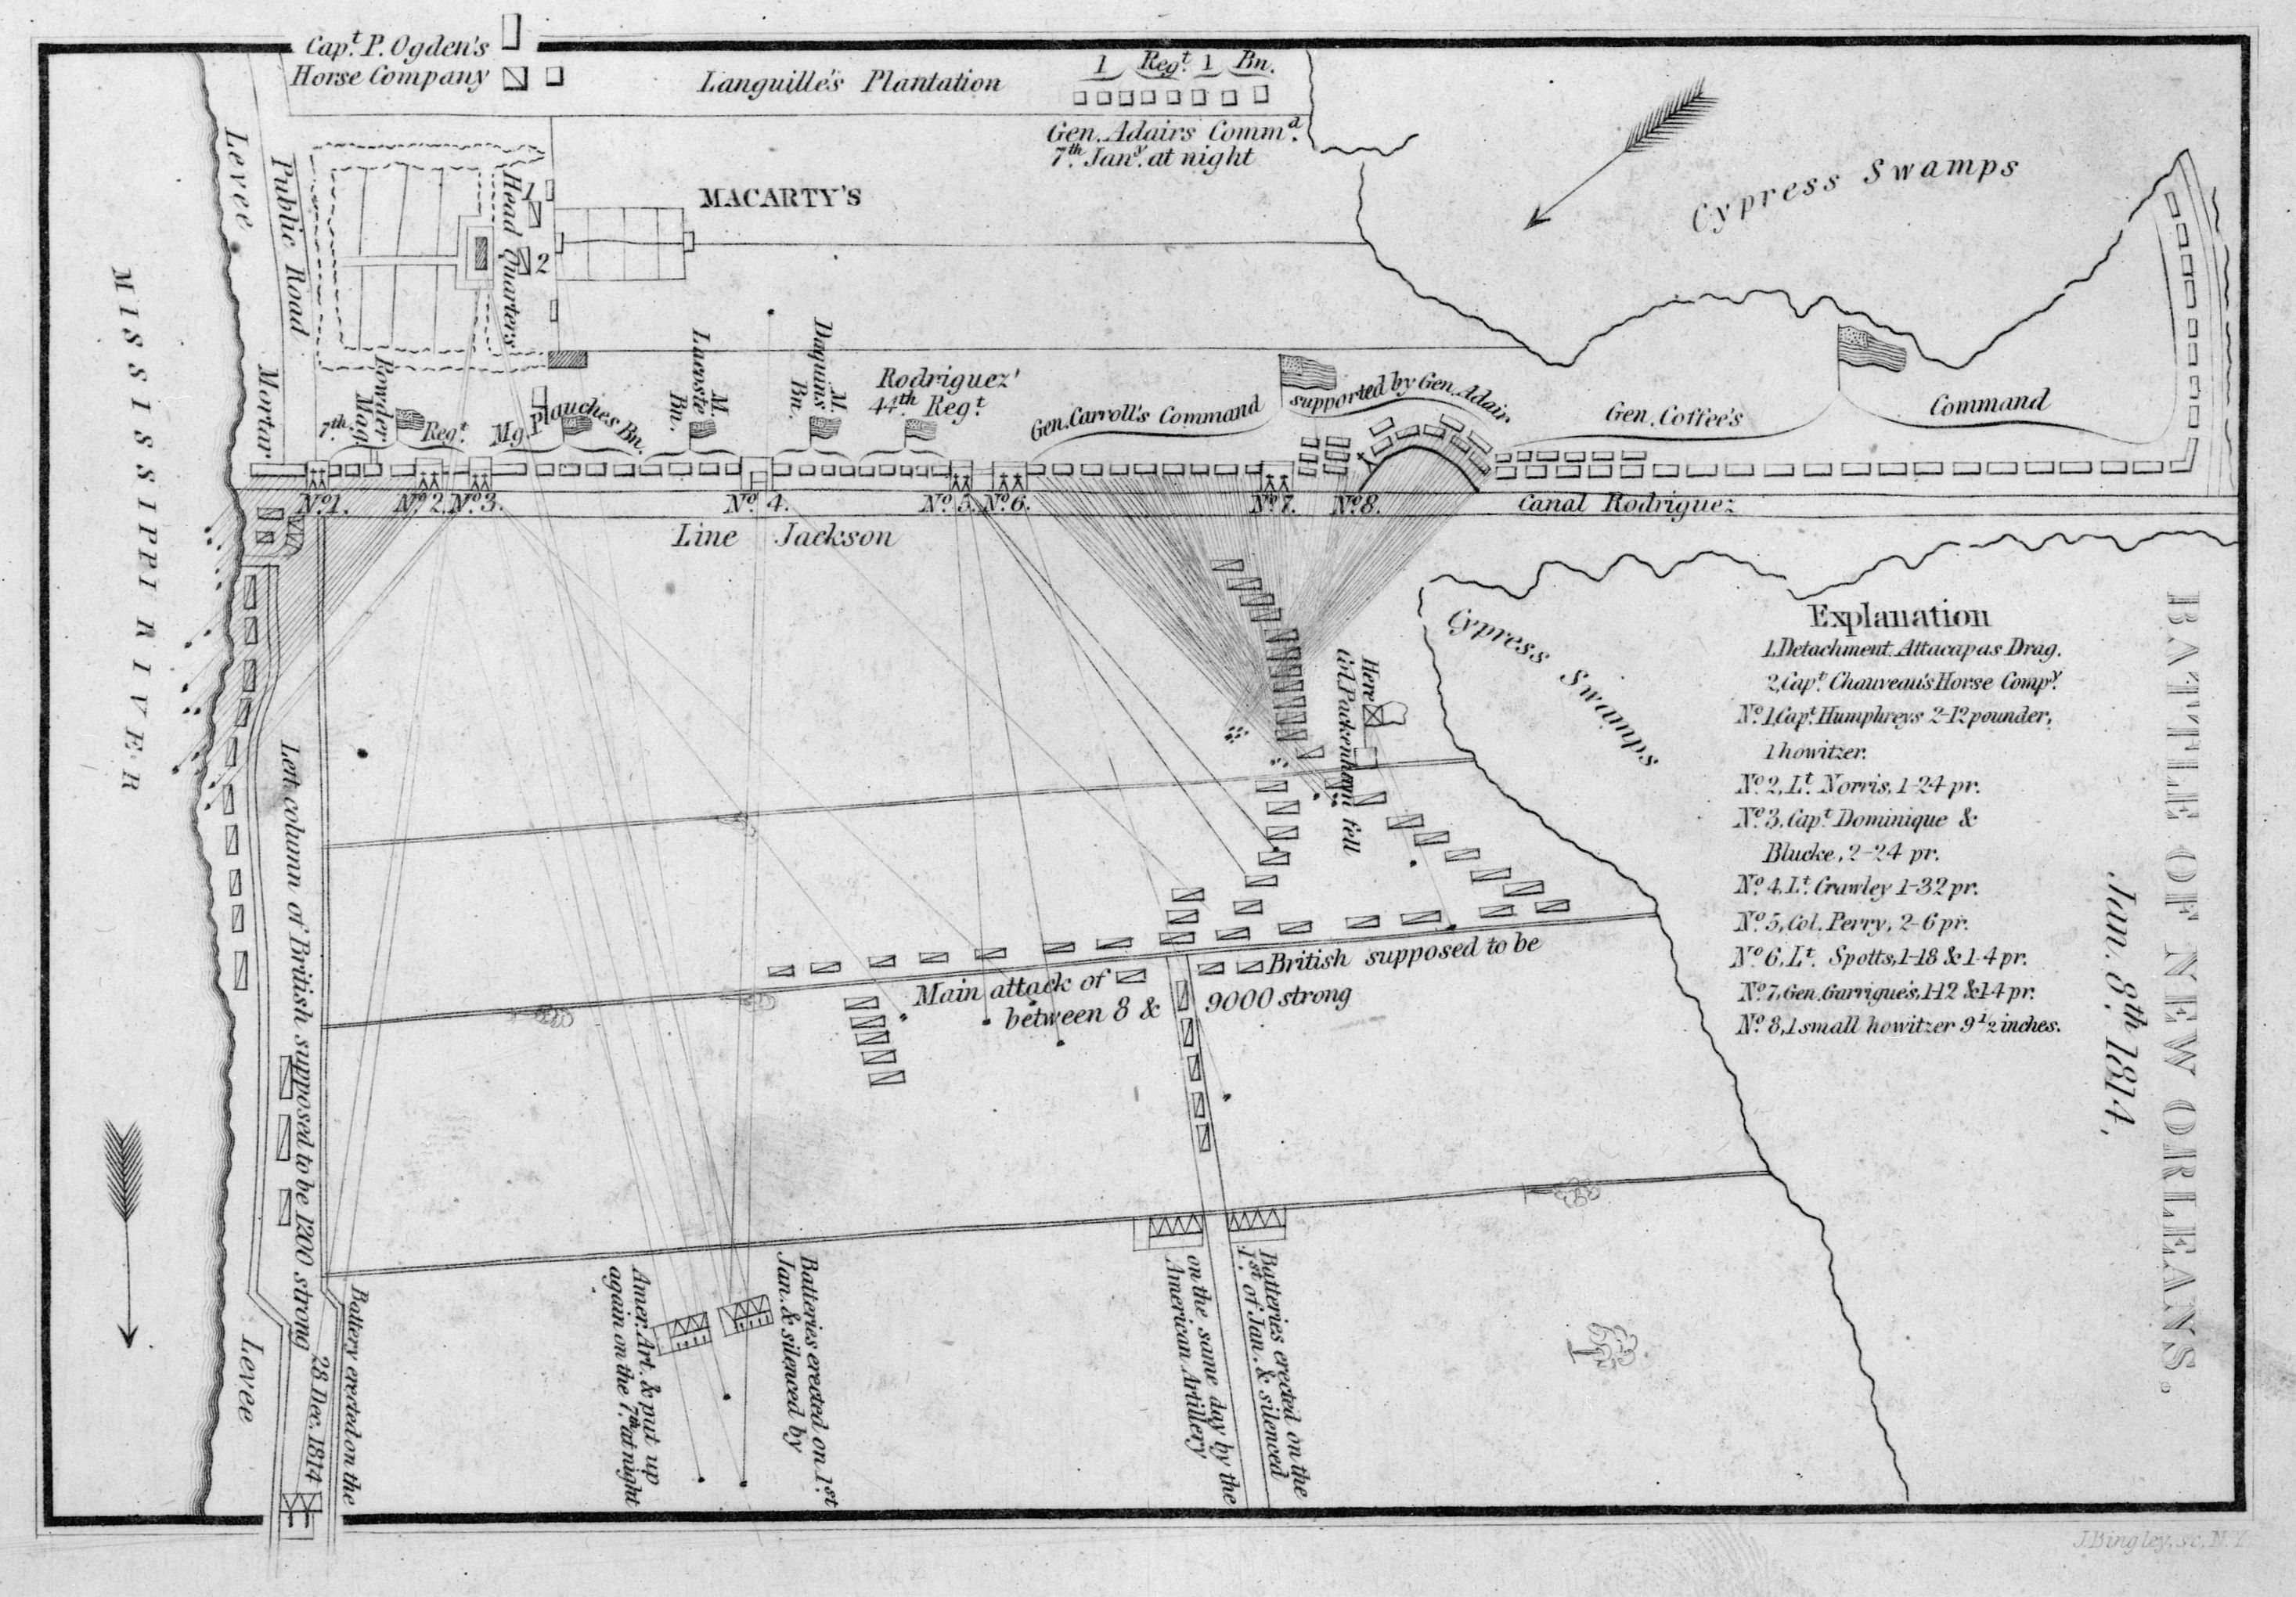 Tactical map depicting locations of units during the Battle of New Orleans.